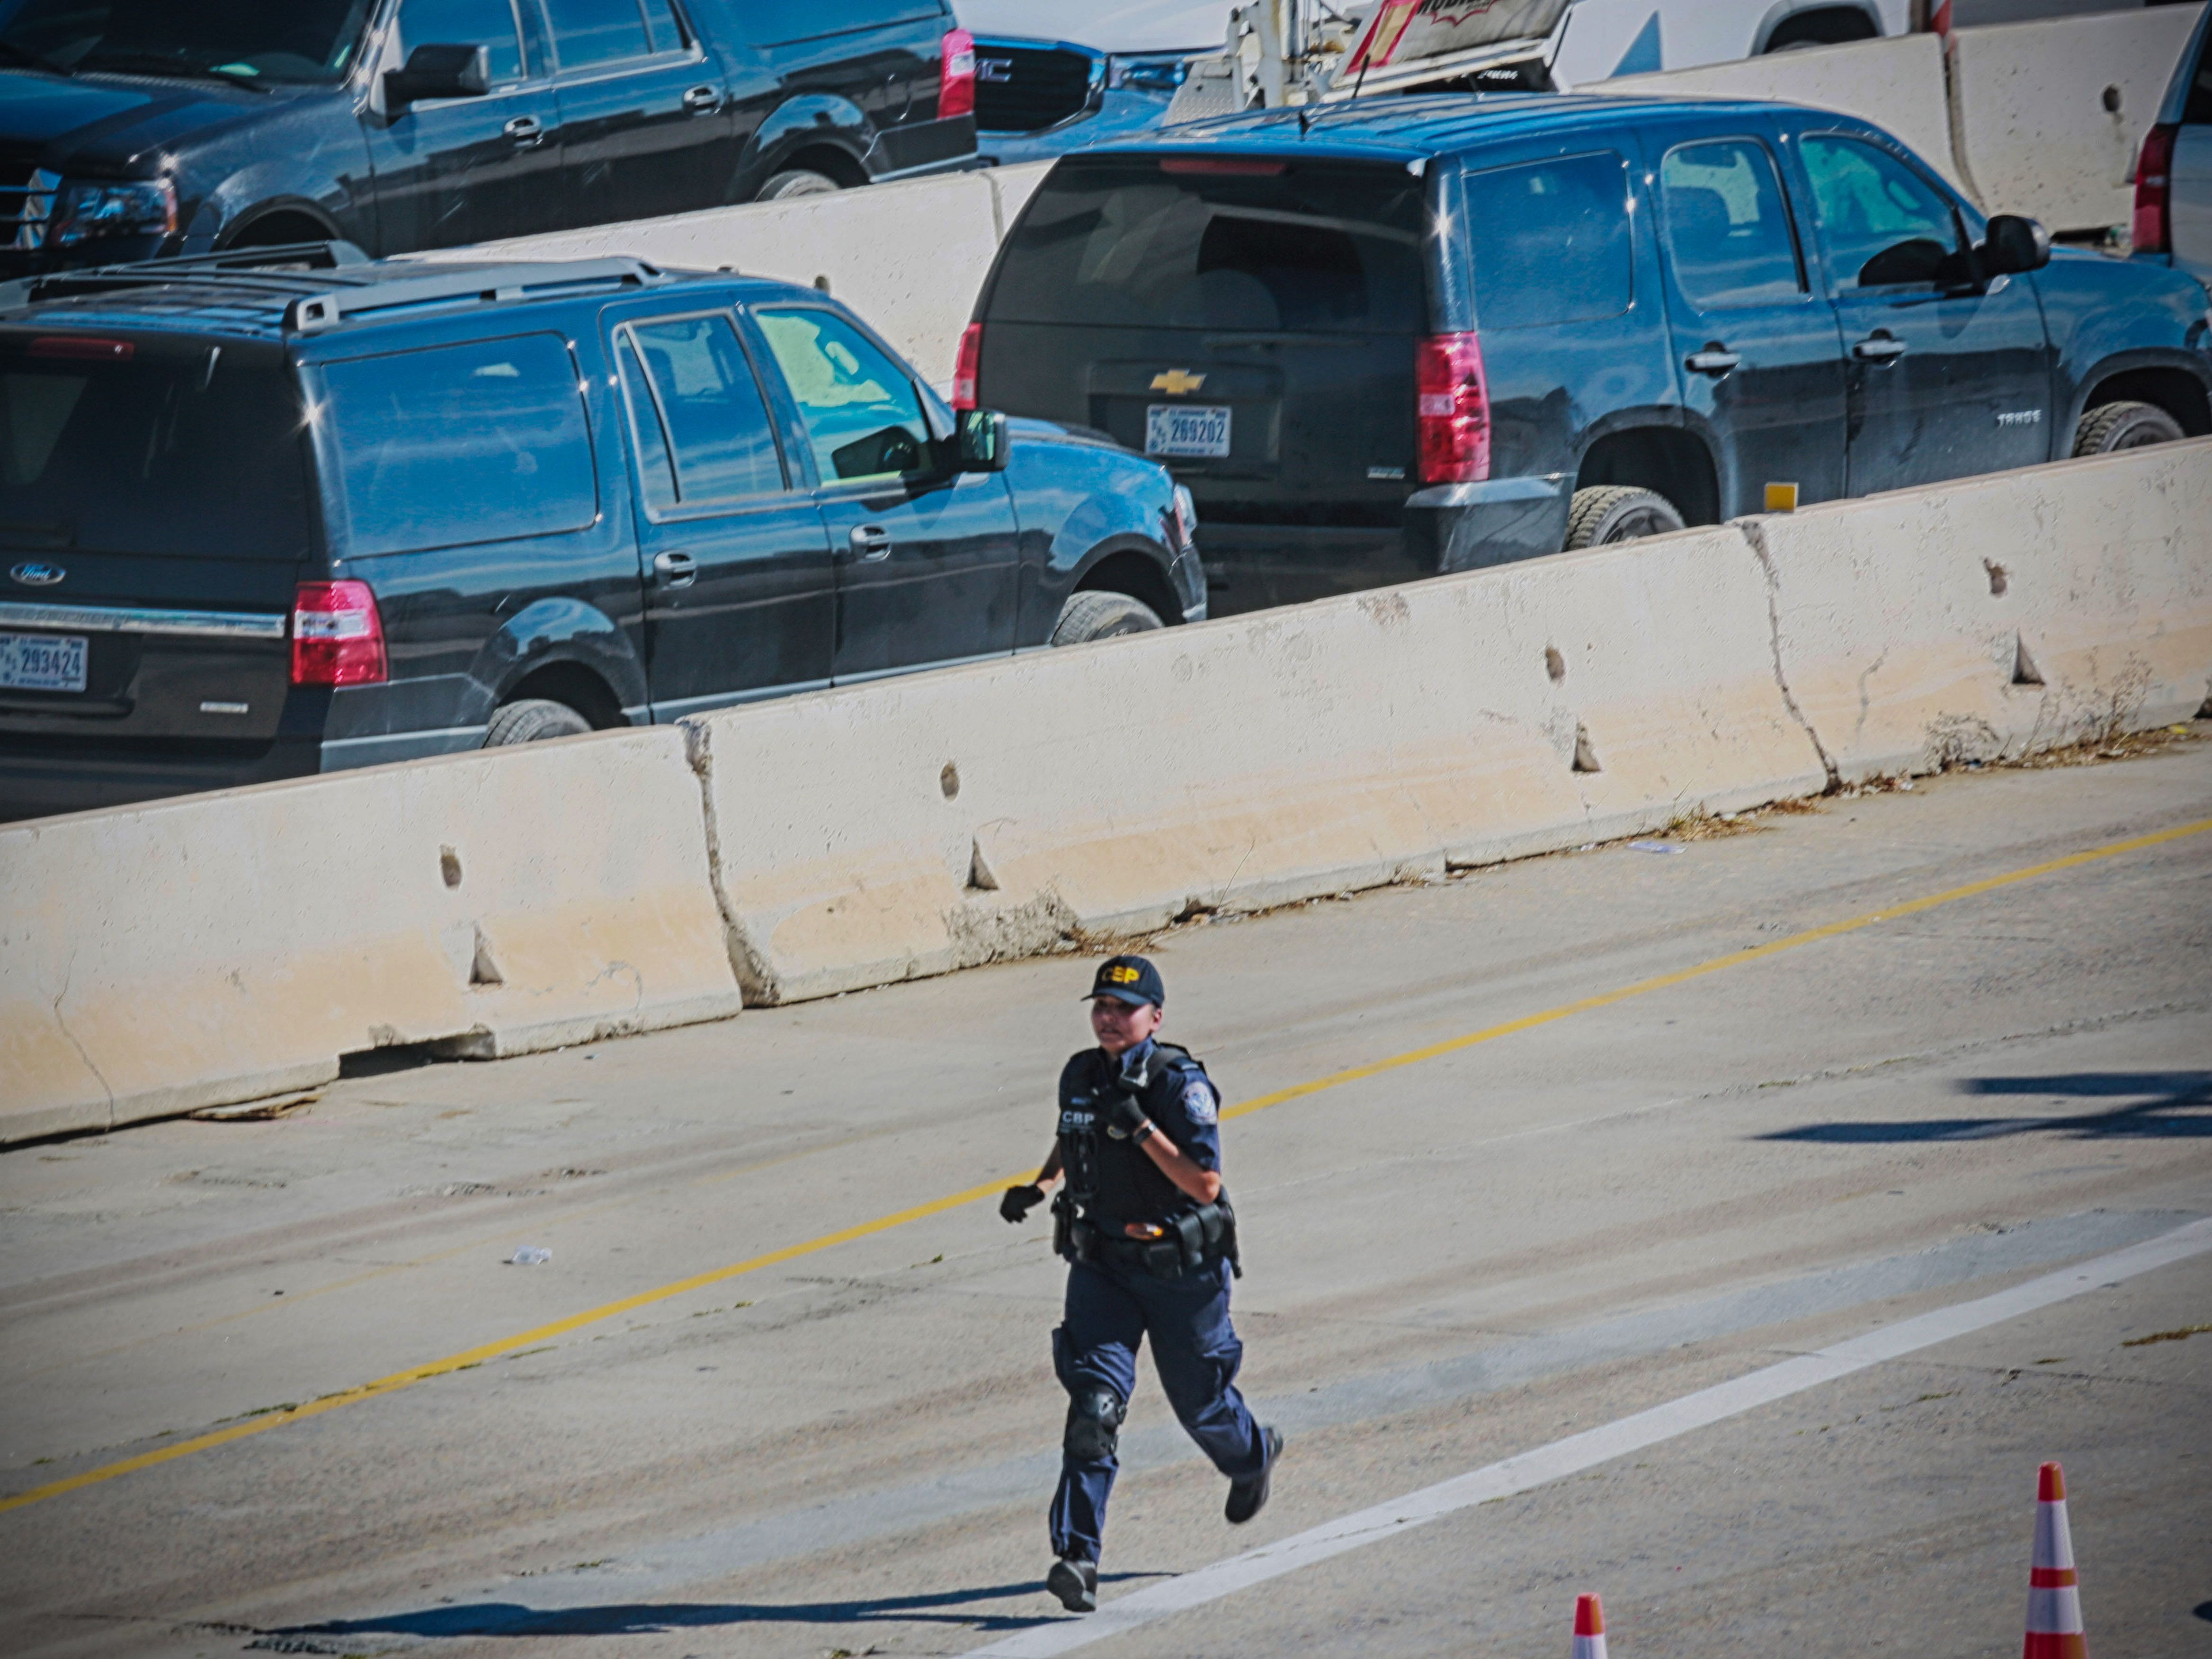 A U.S. Customs and Border Patrol agents is seen running after the closing of the U.S.-Mexico border was ordered on Nov. 25, 2018 at the San Ysidro border crossing point south of San Diego. U.S. officials closed a border crossing in southern California on Sunday after hundreds of migrants tried to breach a border fence from the Mexican city of Tijuana. The U.S. Customs and Border Protection office in San Diego, California, said on Twitter that it had closed both north and south access to vehicle traffic at the San Ysidro border post, before also suspending pedestrian crossings.